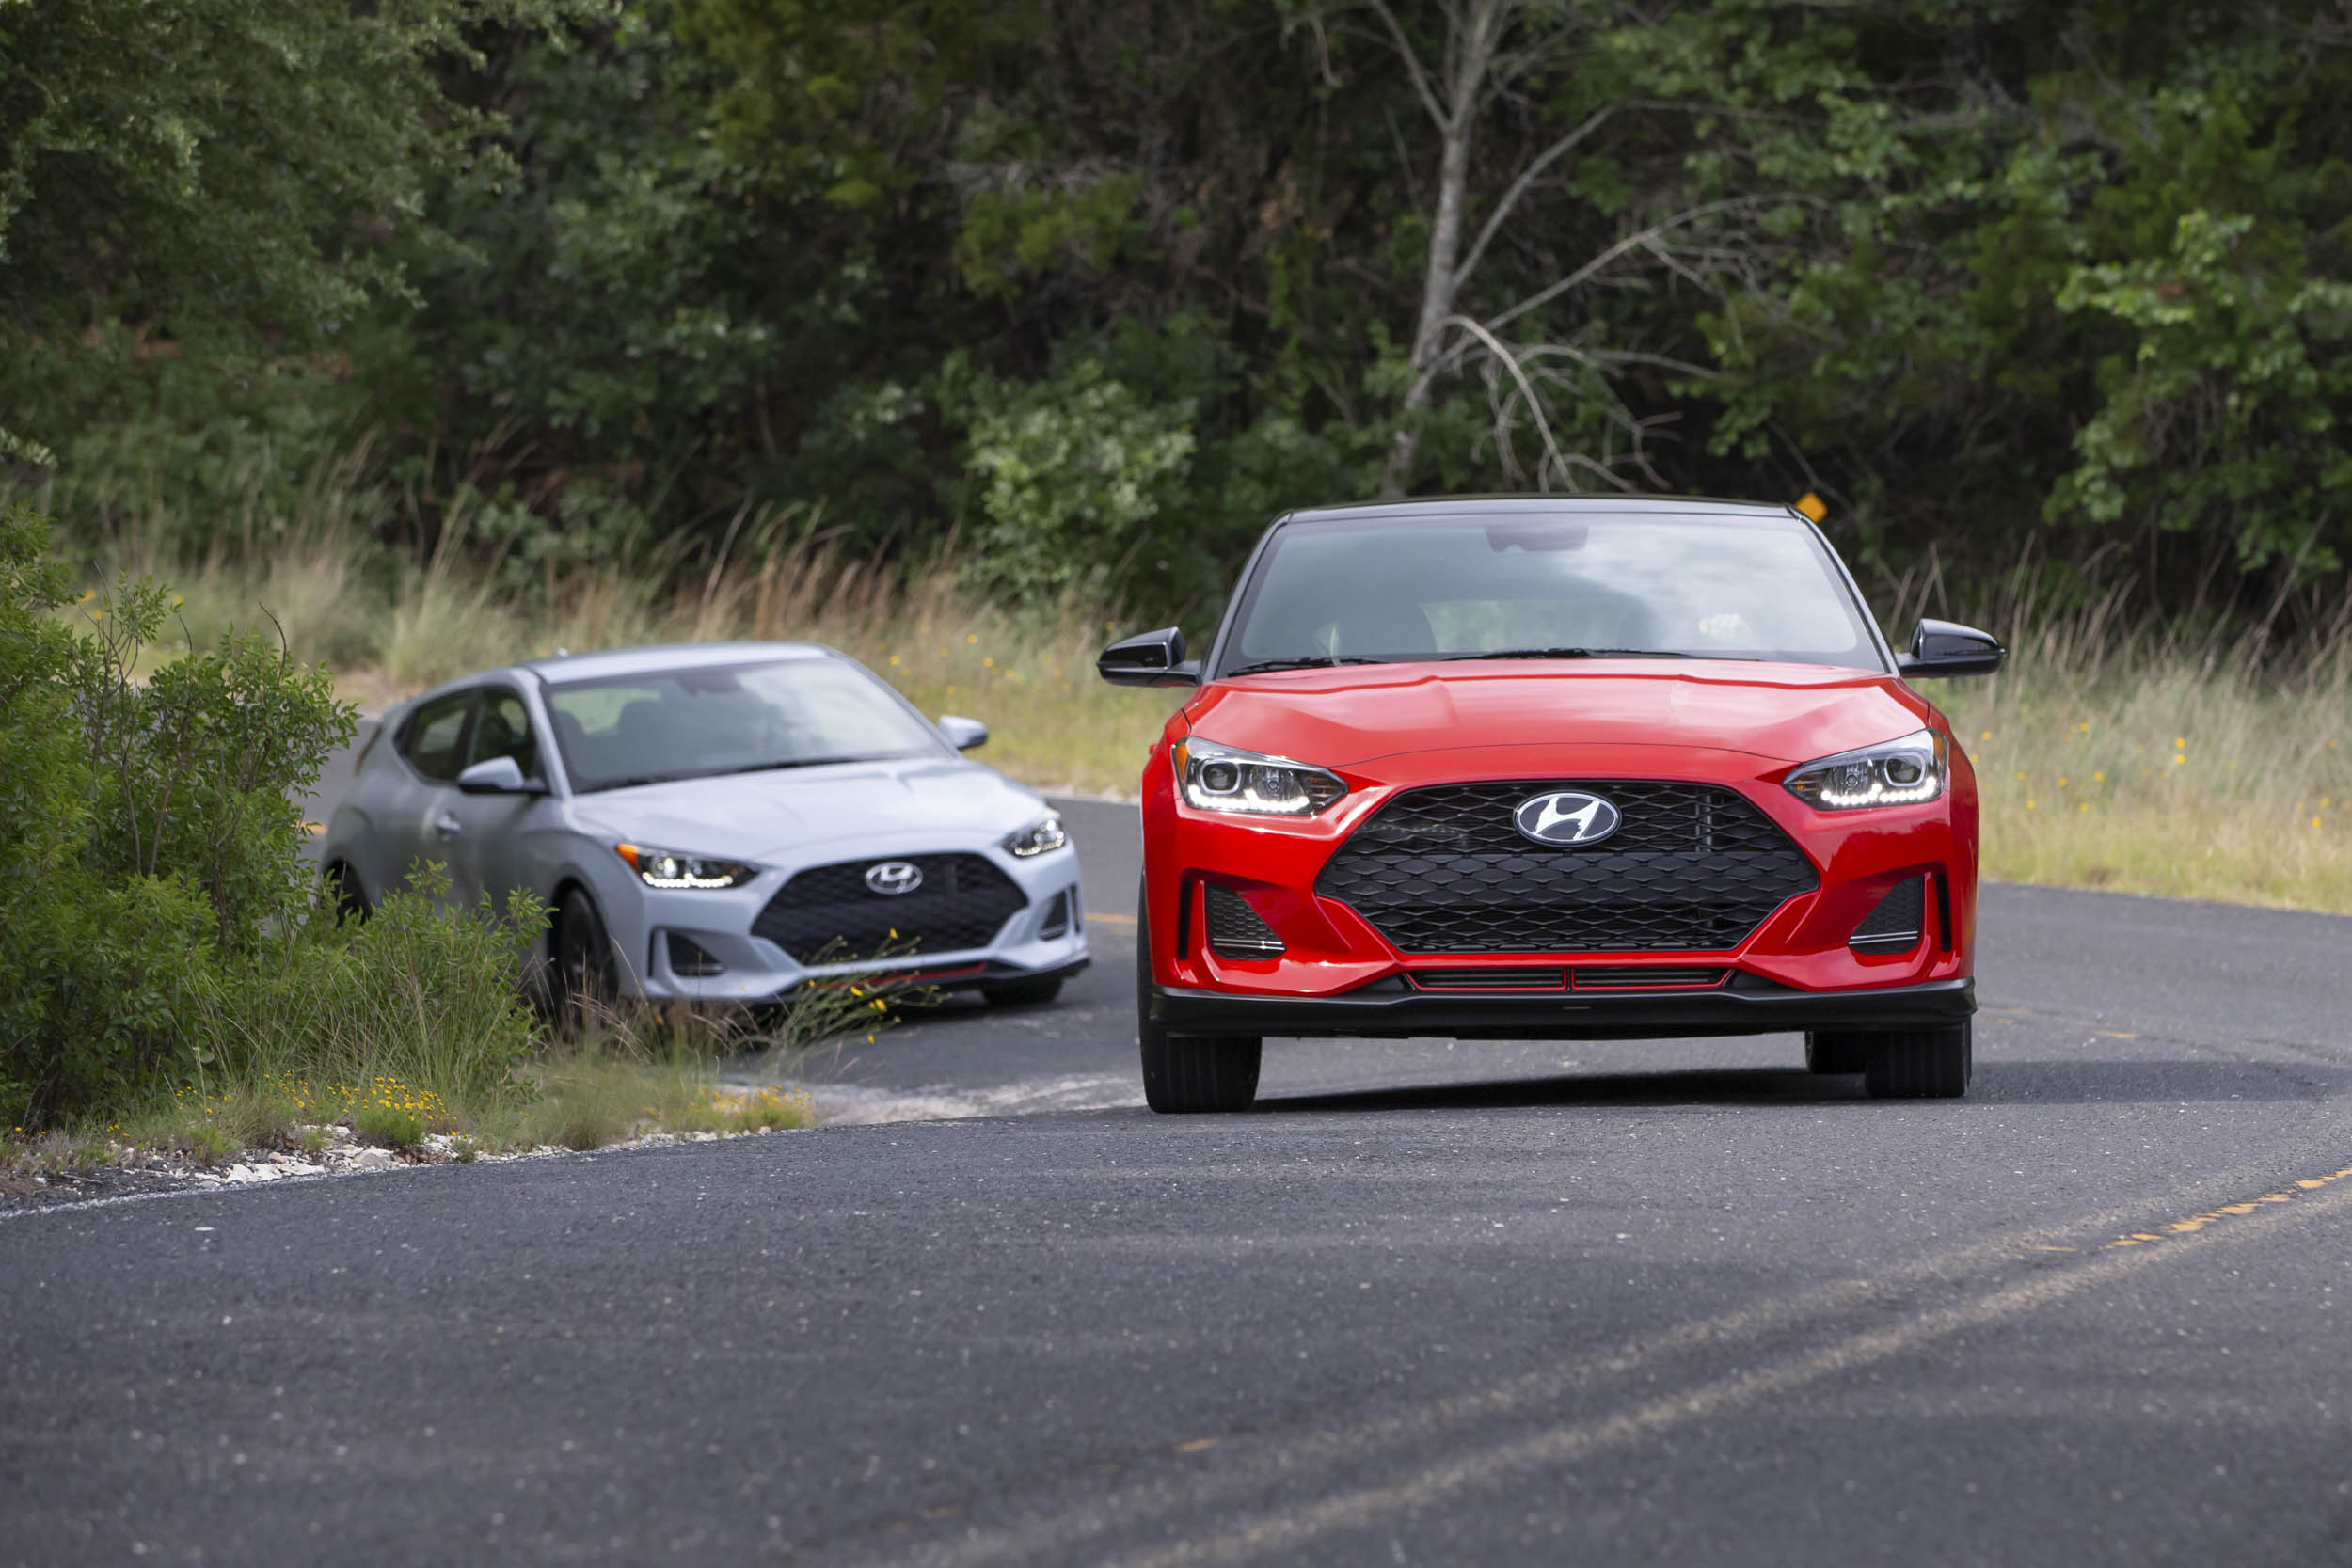 test driving a 2019 Hyundai Veloster